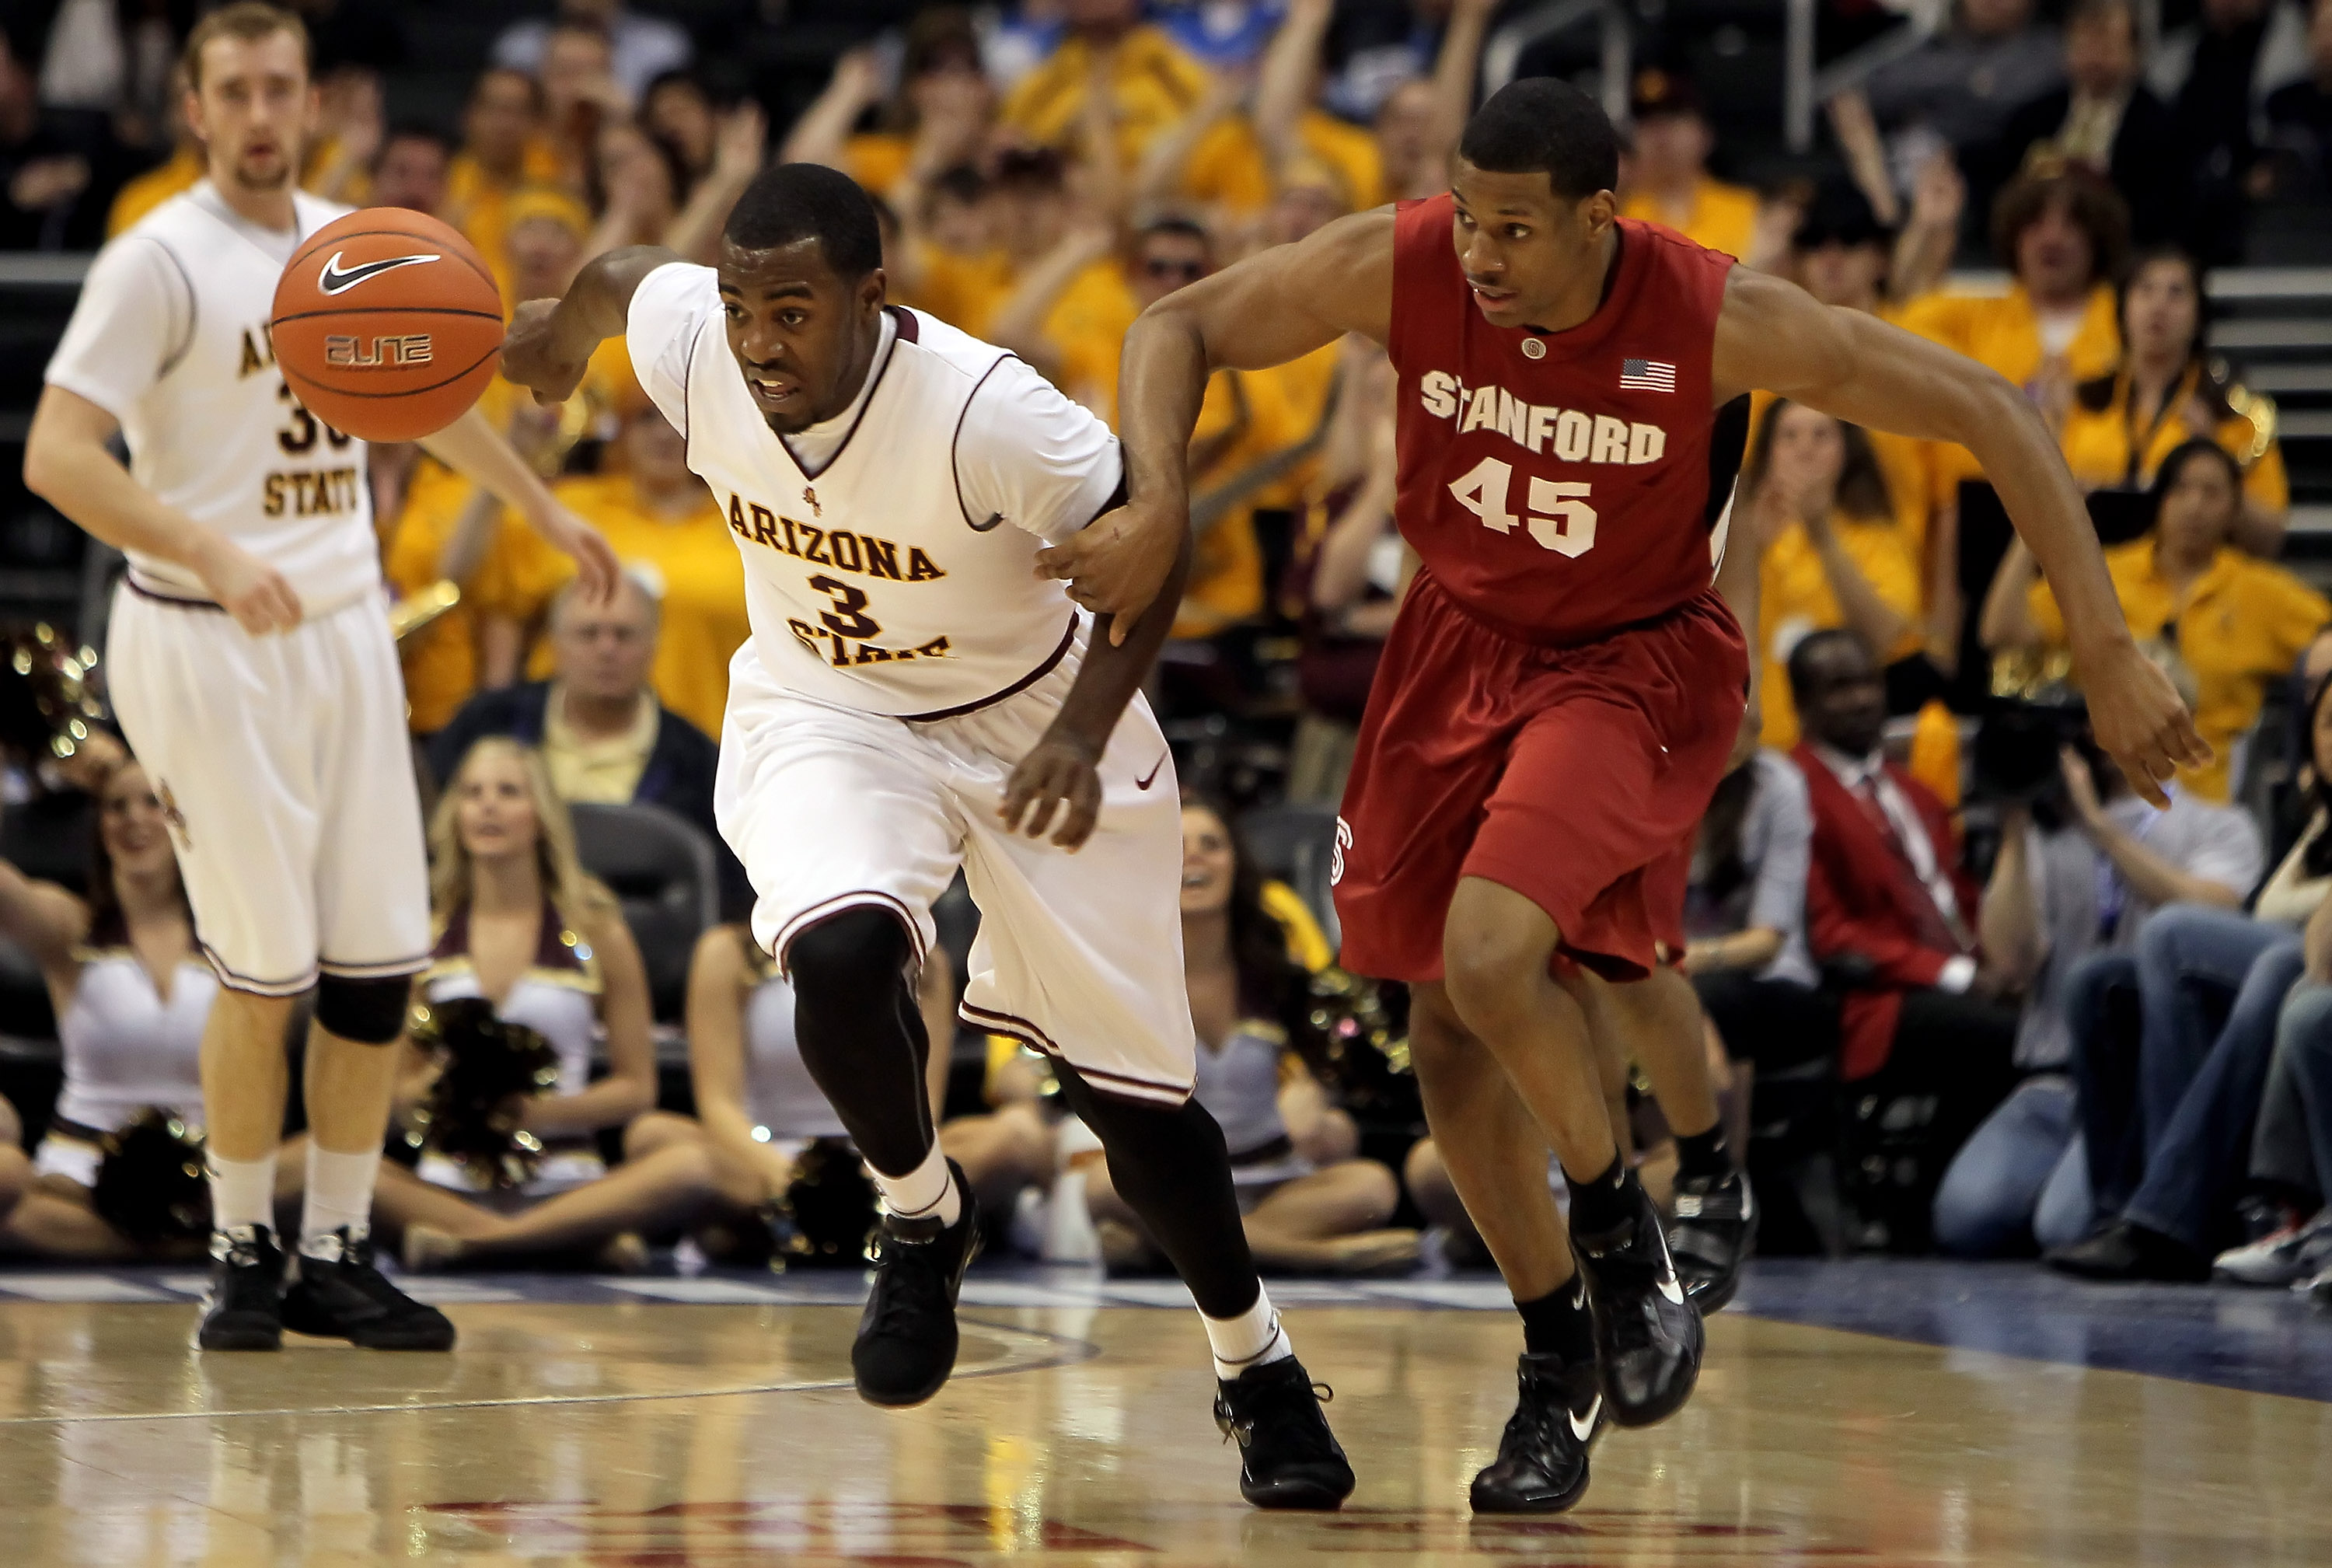 LOS ANGELES, CA - MARCH 11:  Ty Abbott #3 of the Arizona State Sun Devils and Jeremy Green #45 of the Stanford Cardinal fight for a loose ball in the first half during the Quarterfinals of the Pac-10 Basketball Tournament at Staples Center on March 11, 20